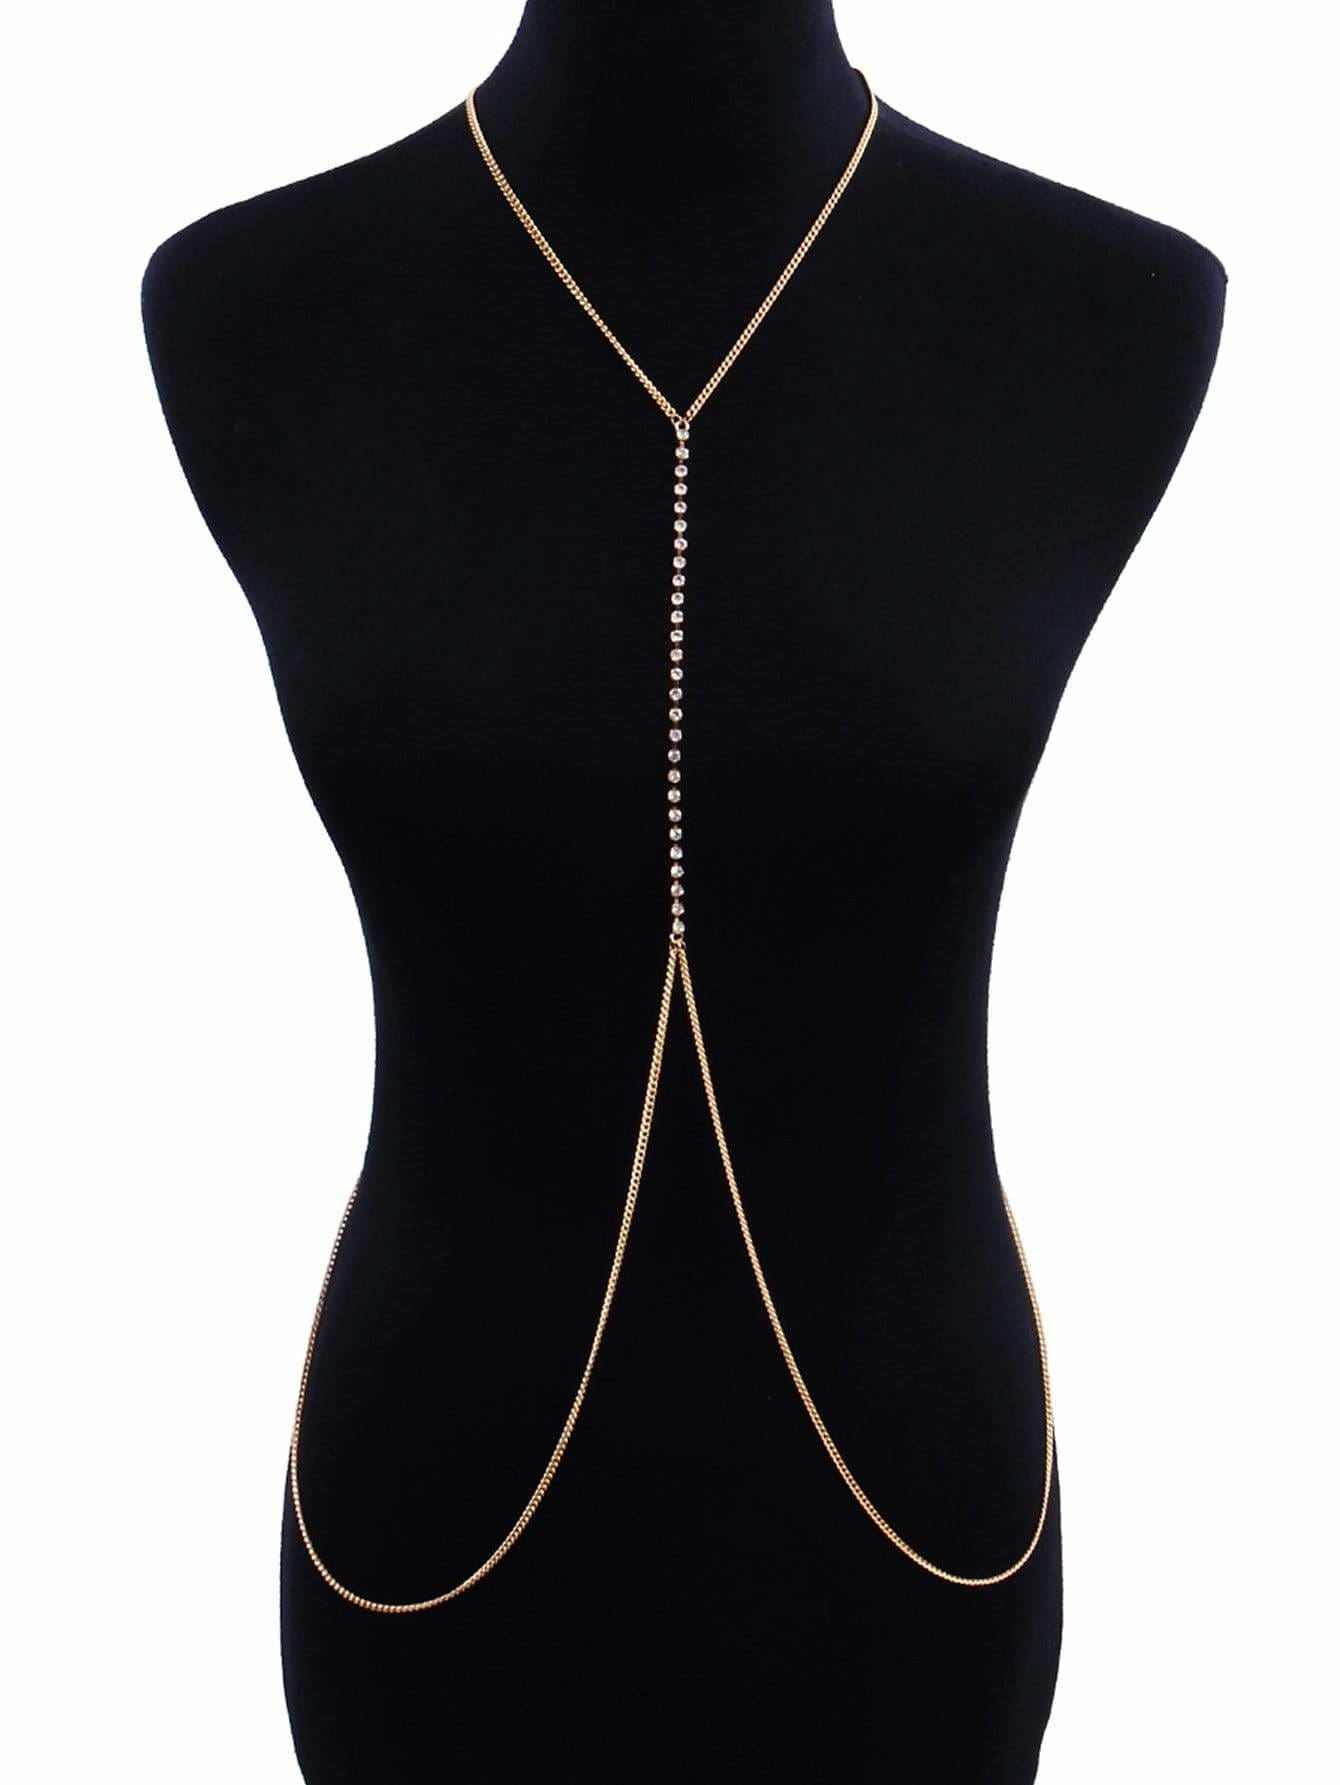 Bead Detail Body Chain